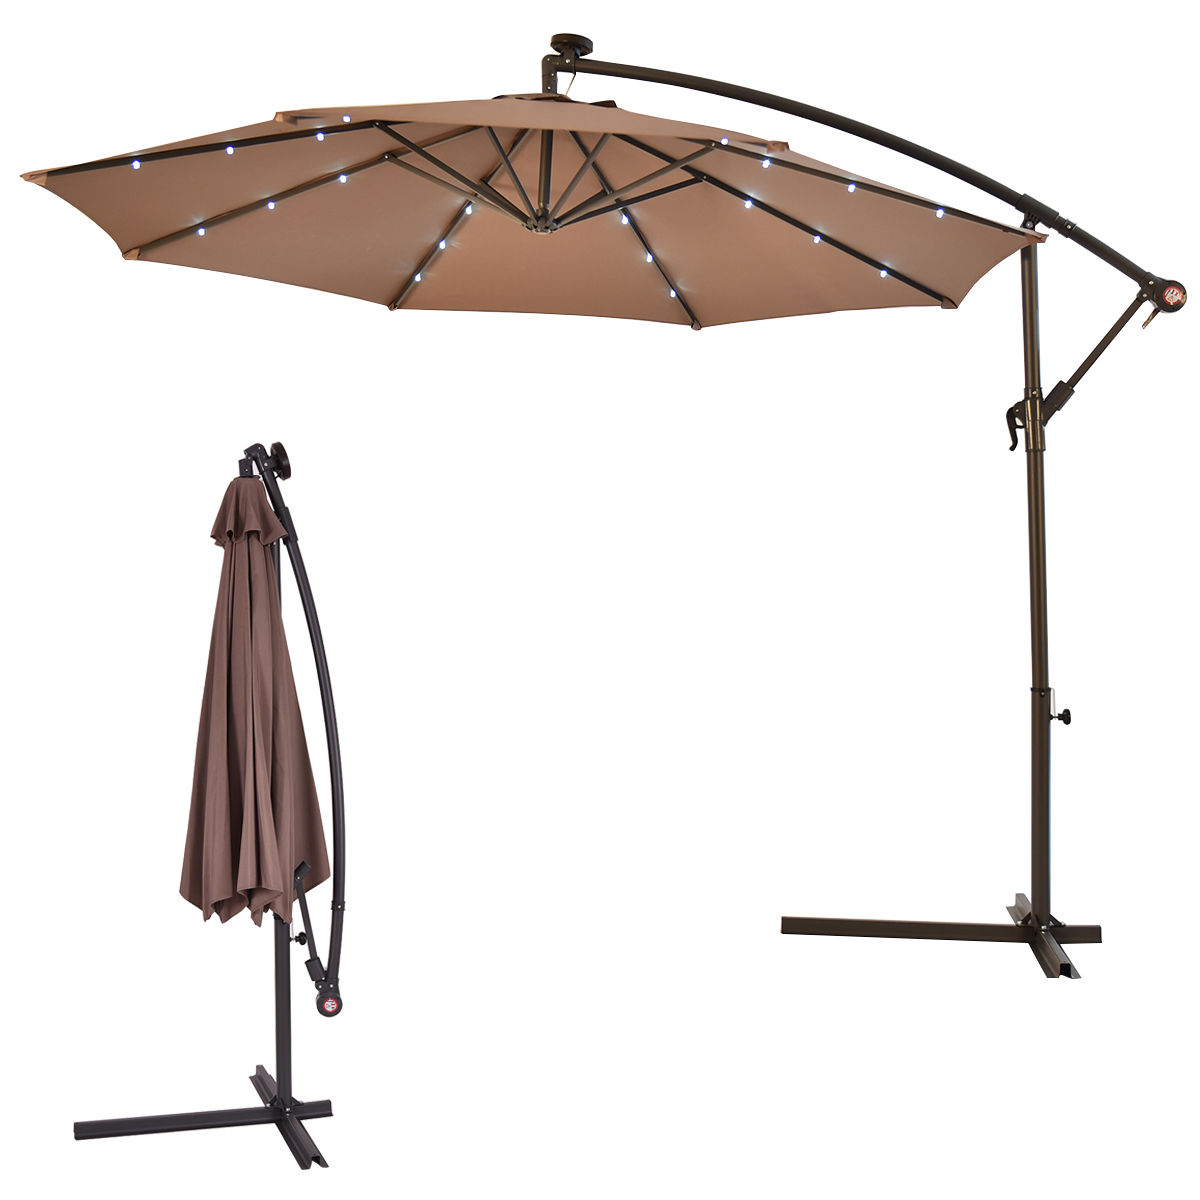 Exceptional Costway 10u0027 Hanging Solar LED Umbrella Patio Sun Shade Offset Market W/Base  Tan